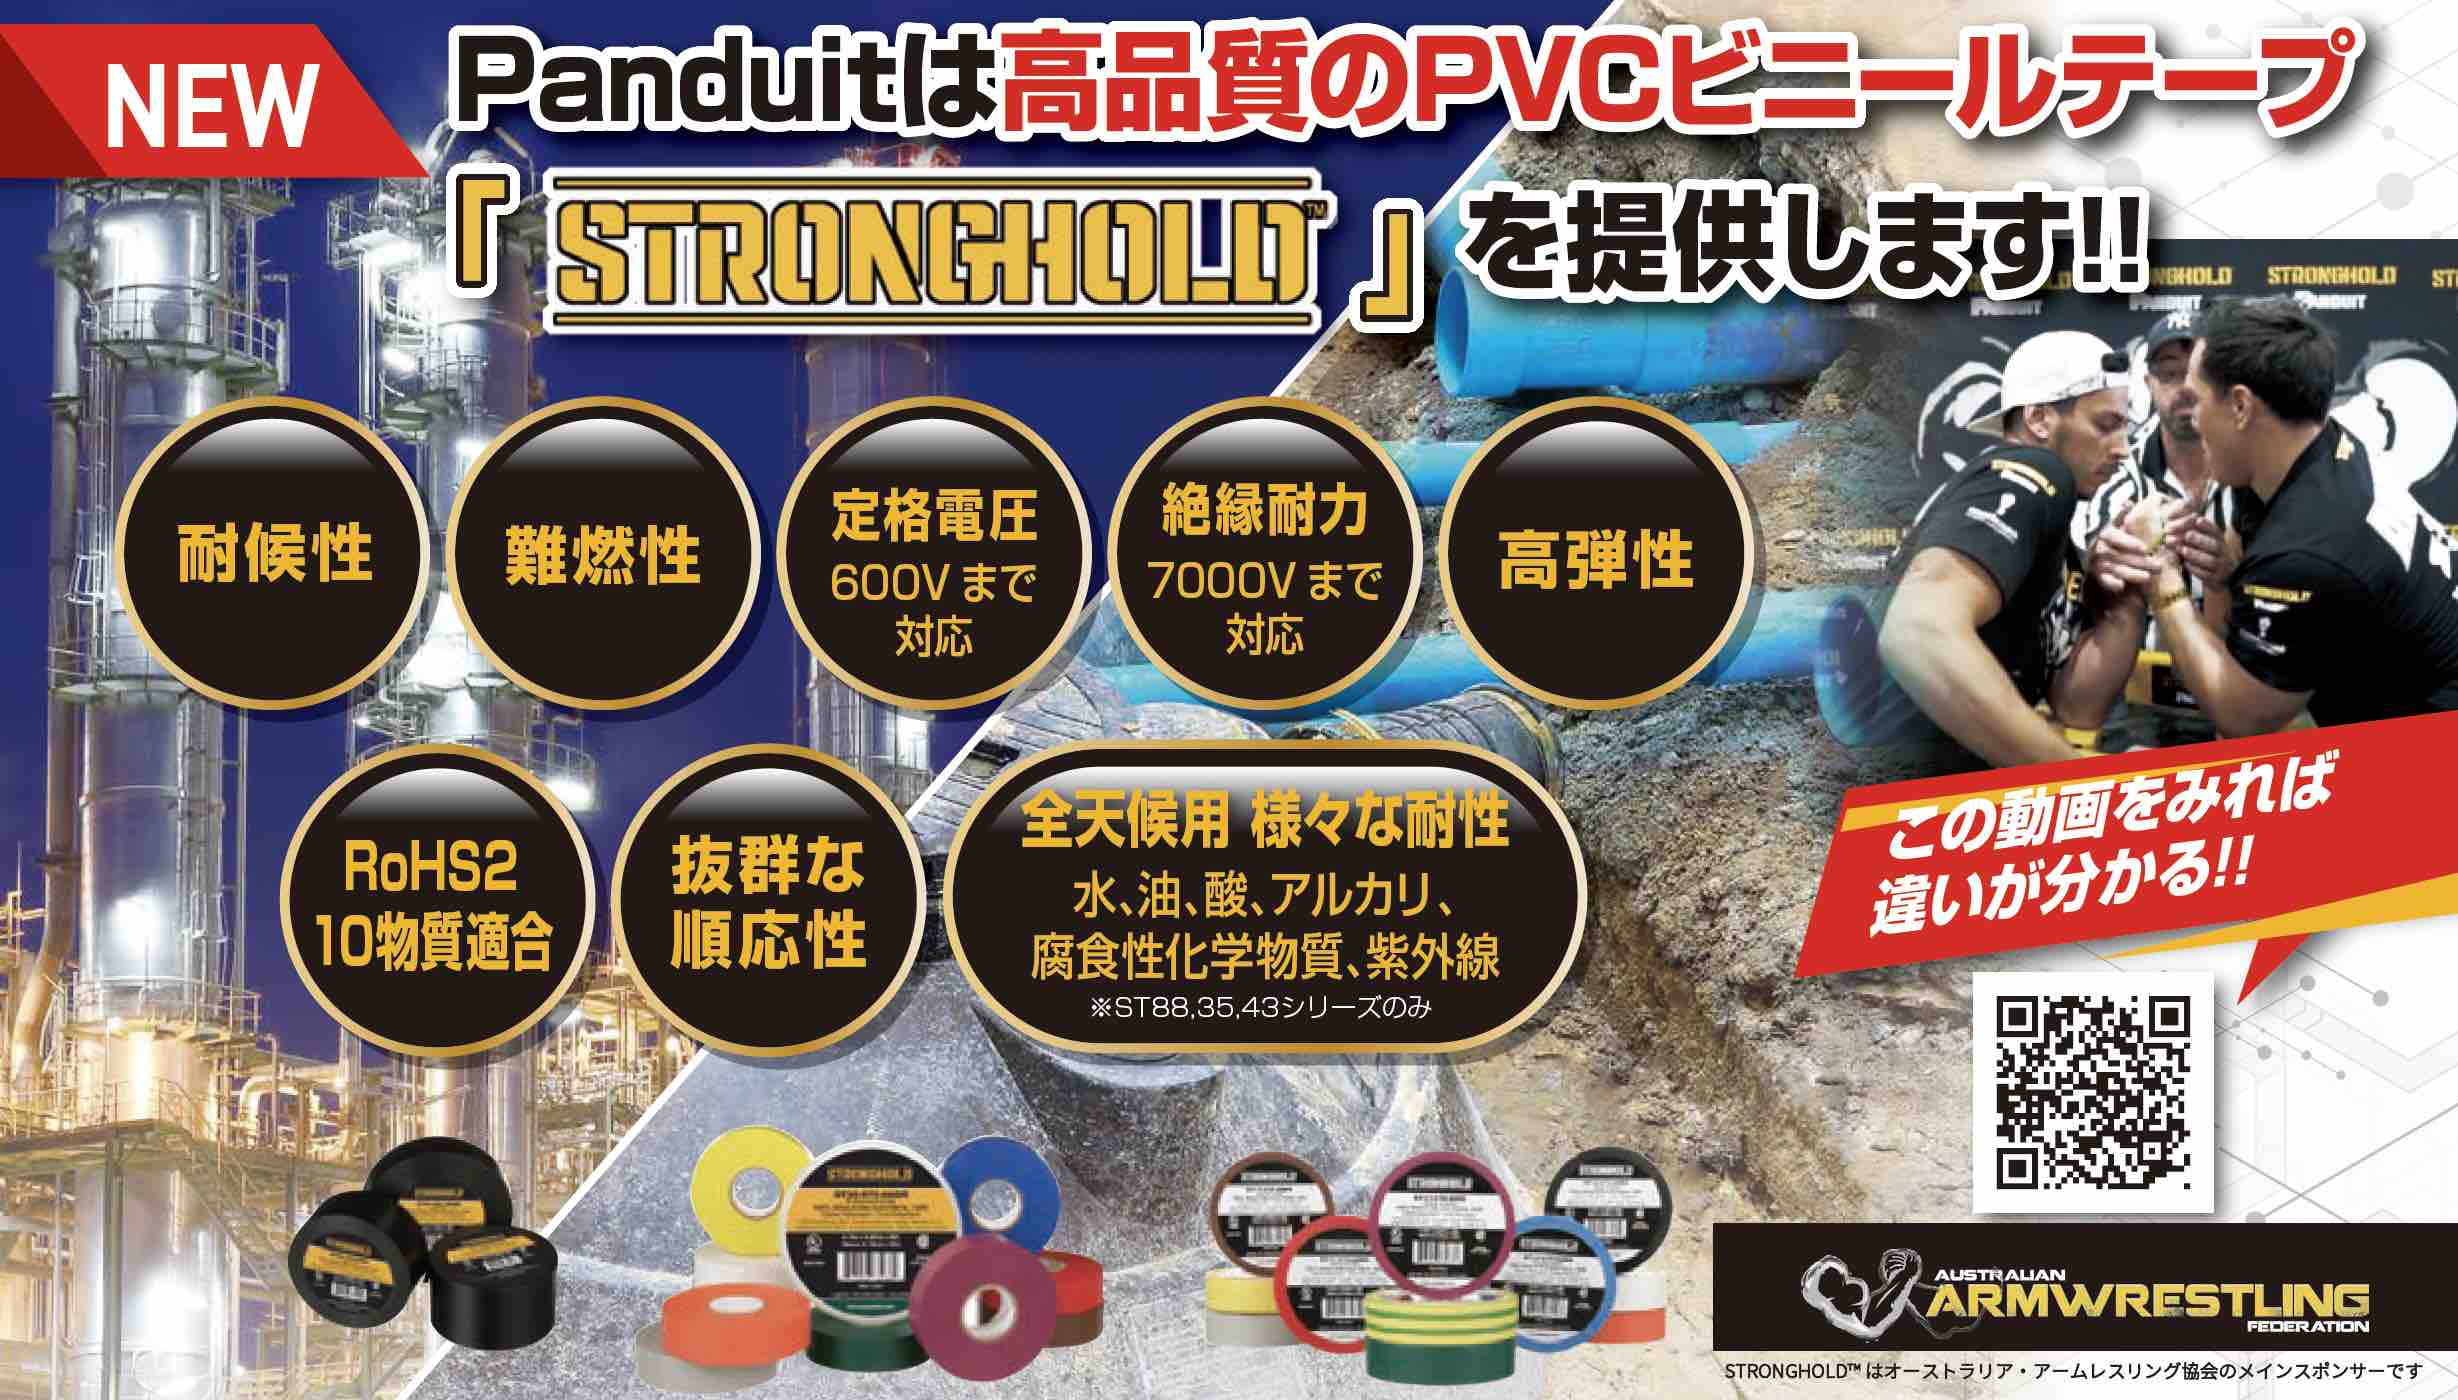 STRONGHOLD ビニールテープ